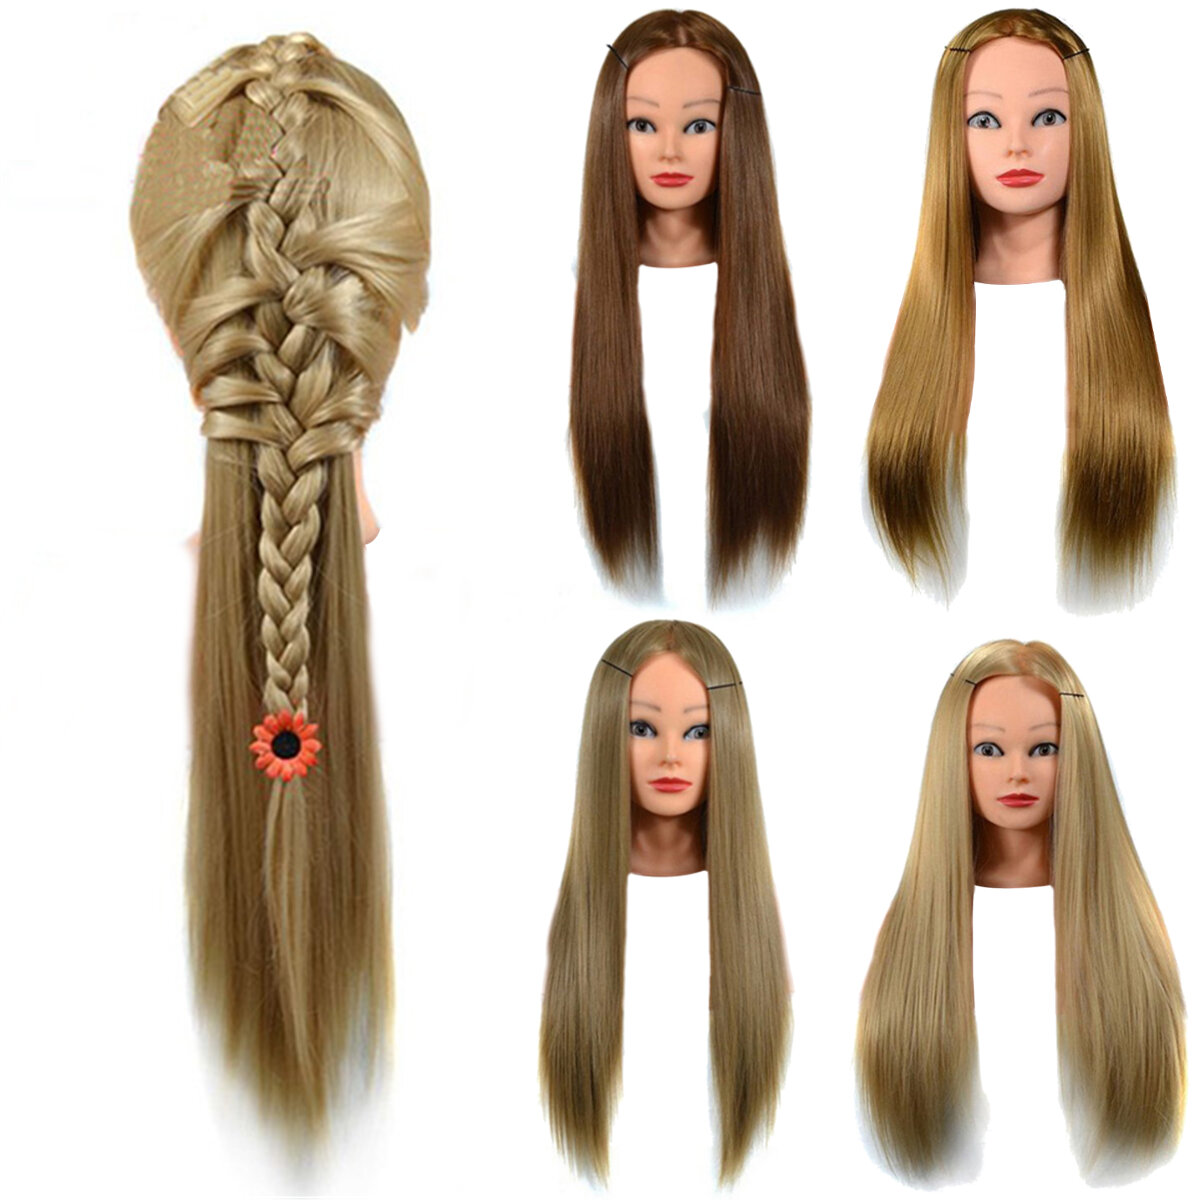 Cosmetology Mannequin Head with Hair for Braiding Cornrow Practice Head Training Mannequin Dummy Heads - 1